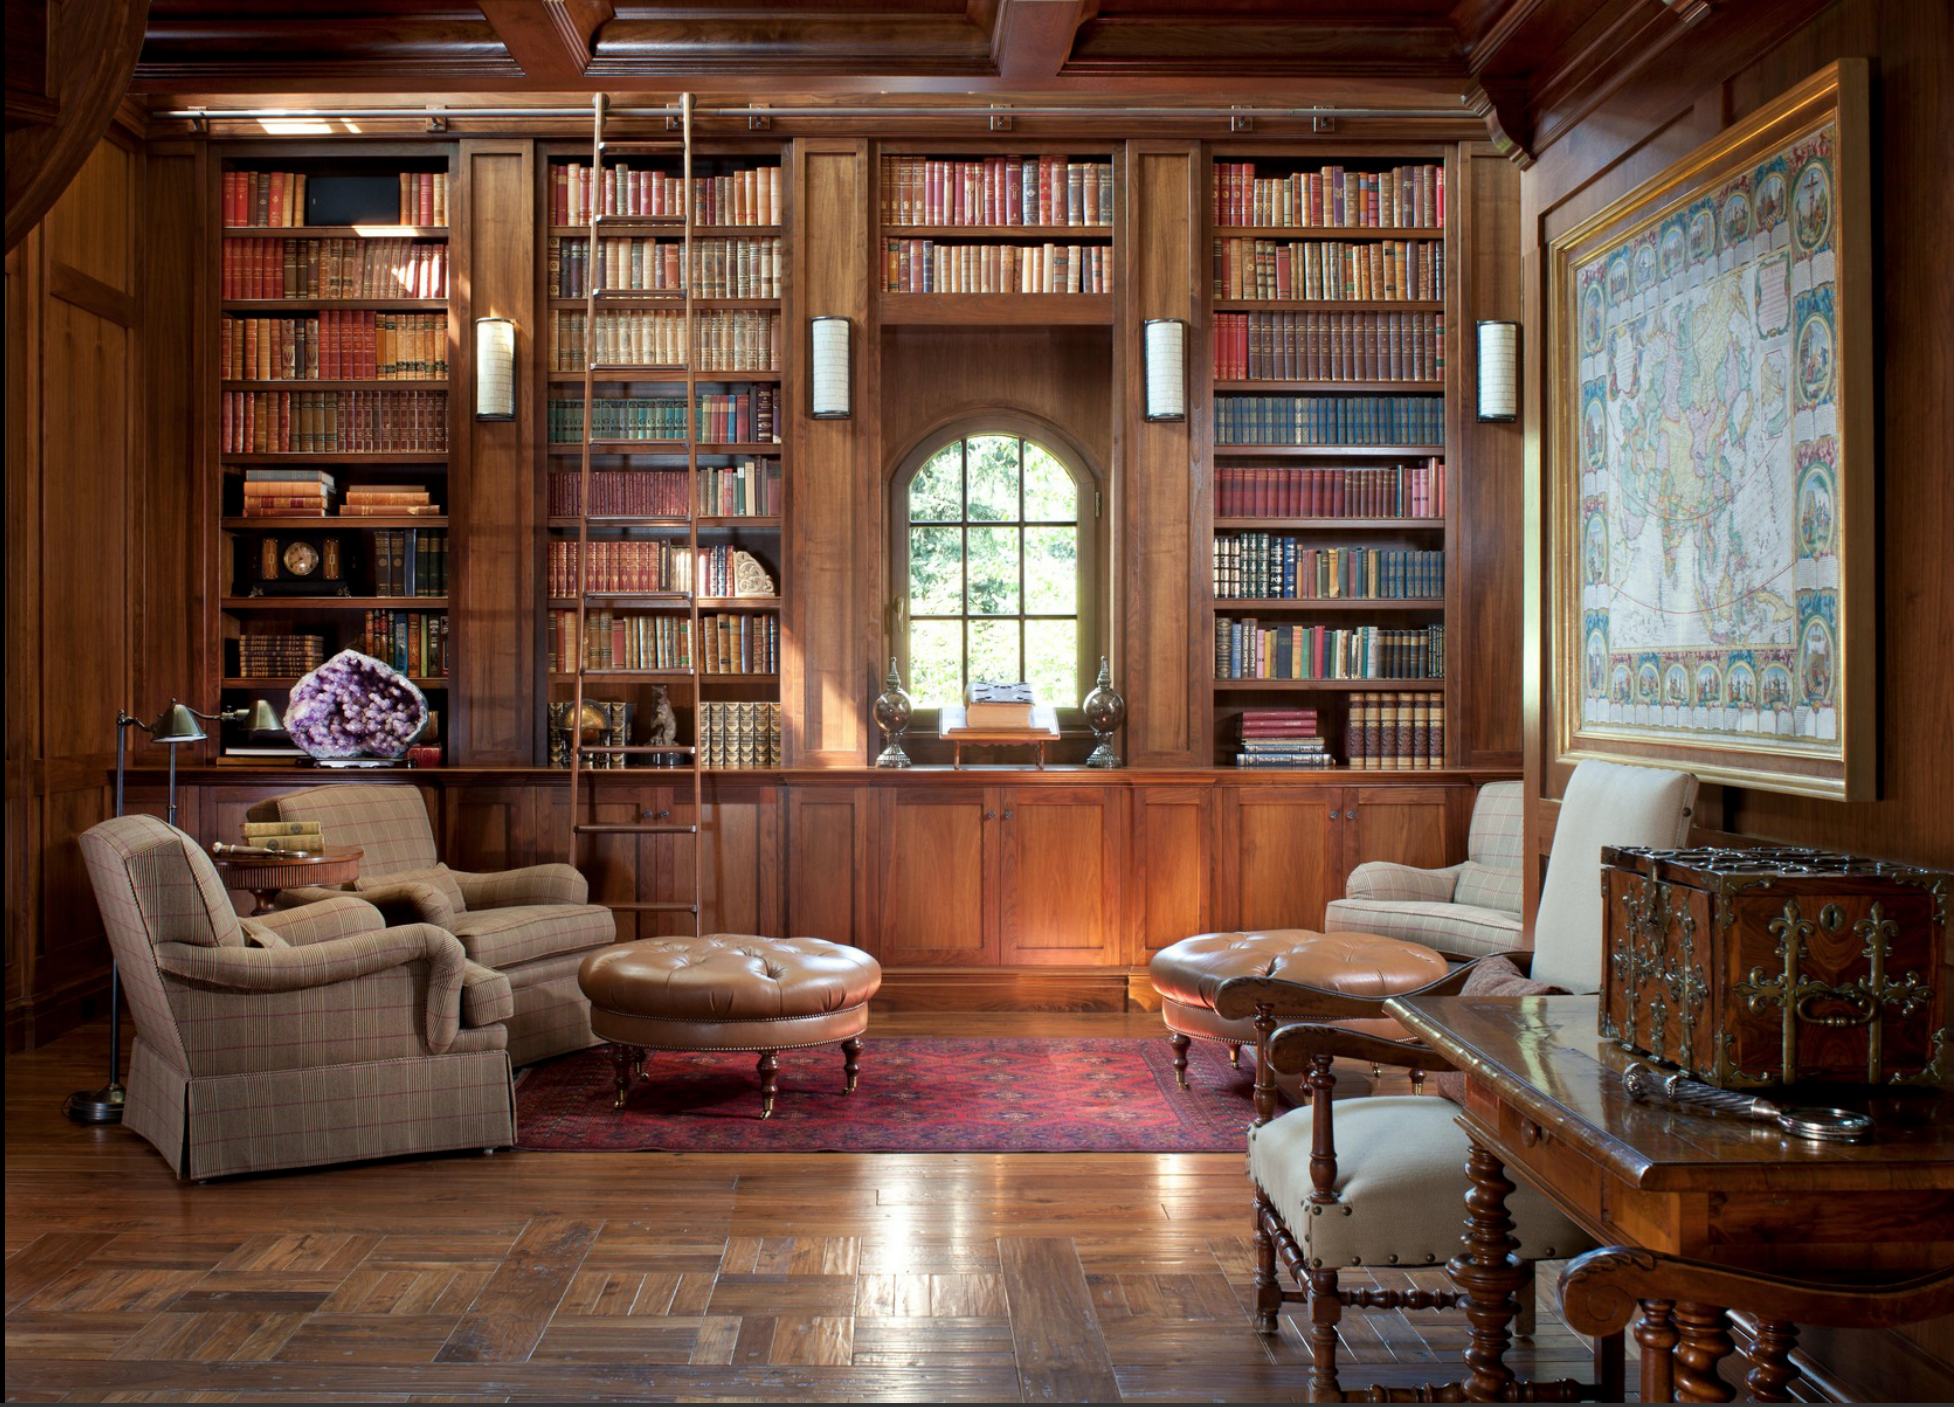 Amazing Home Library Click To Select Image, And Then Click